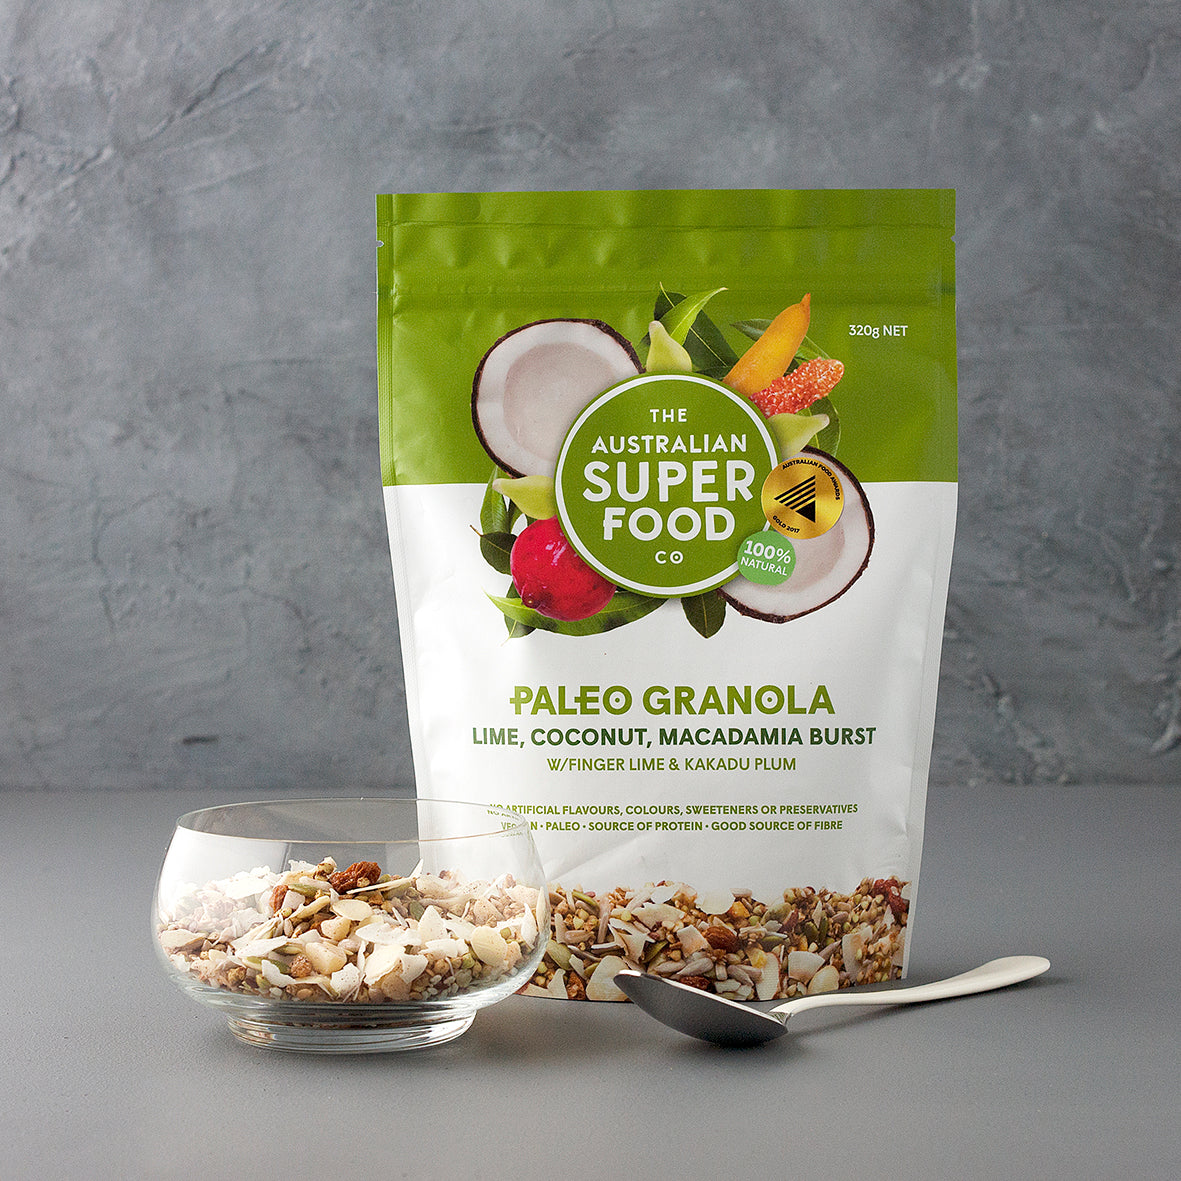 The Australian Superfood Company Lime, Coconut, Macadamia Burst 320g